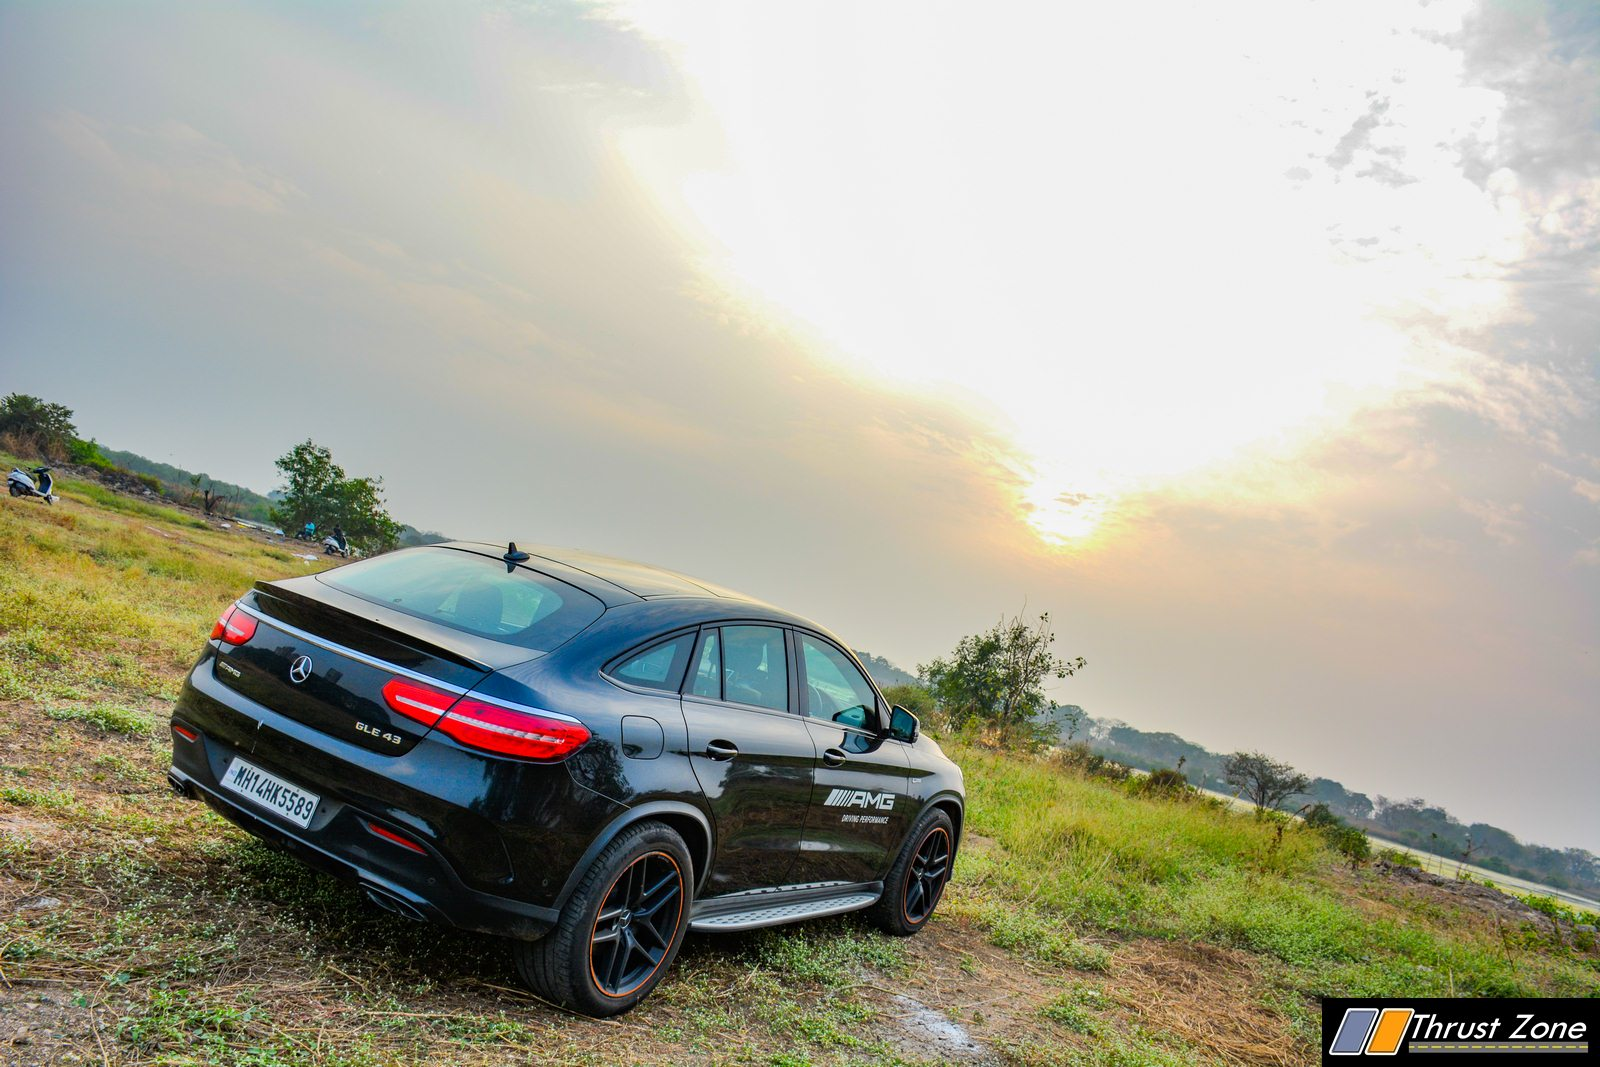 https://www.thrustzone.com/wp-content/uploads/2020/03/2019-Mercedes-GLE-43-AMG-India-Review-12.jpg